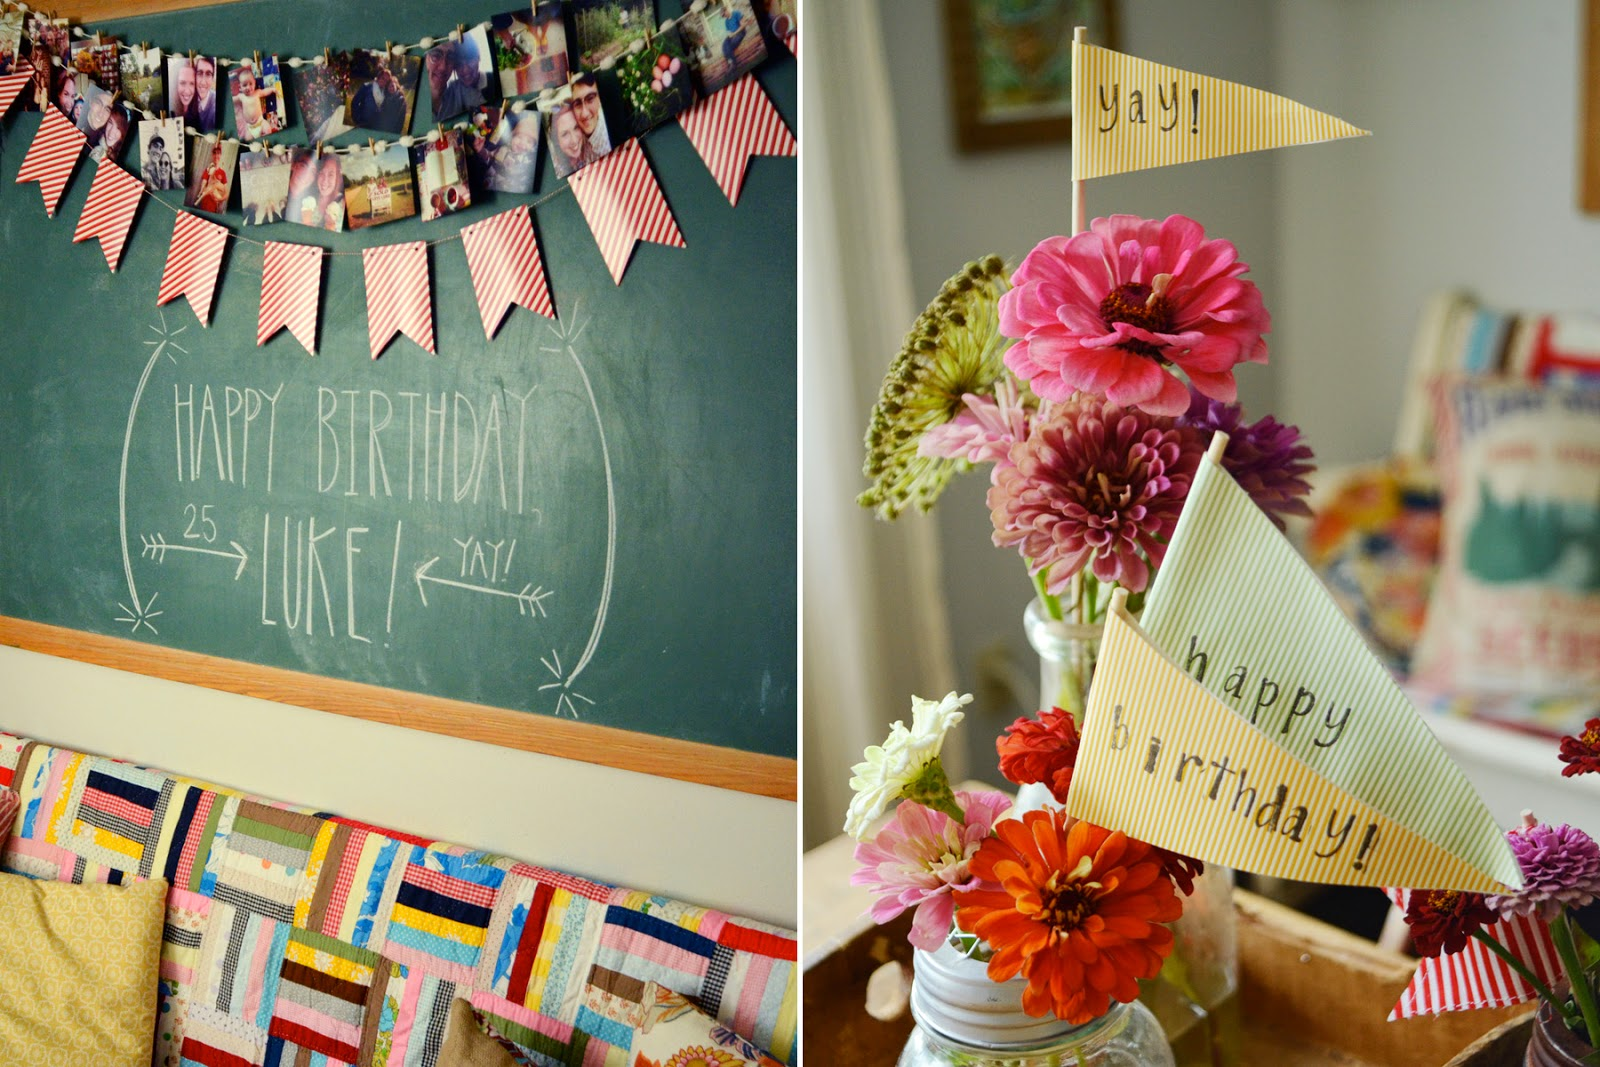 natalie creates simple birthday celebration ideas on a budget